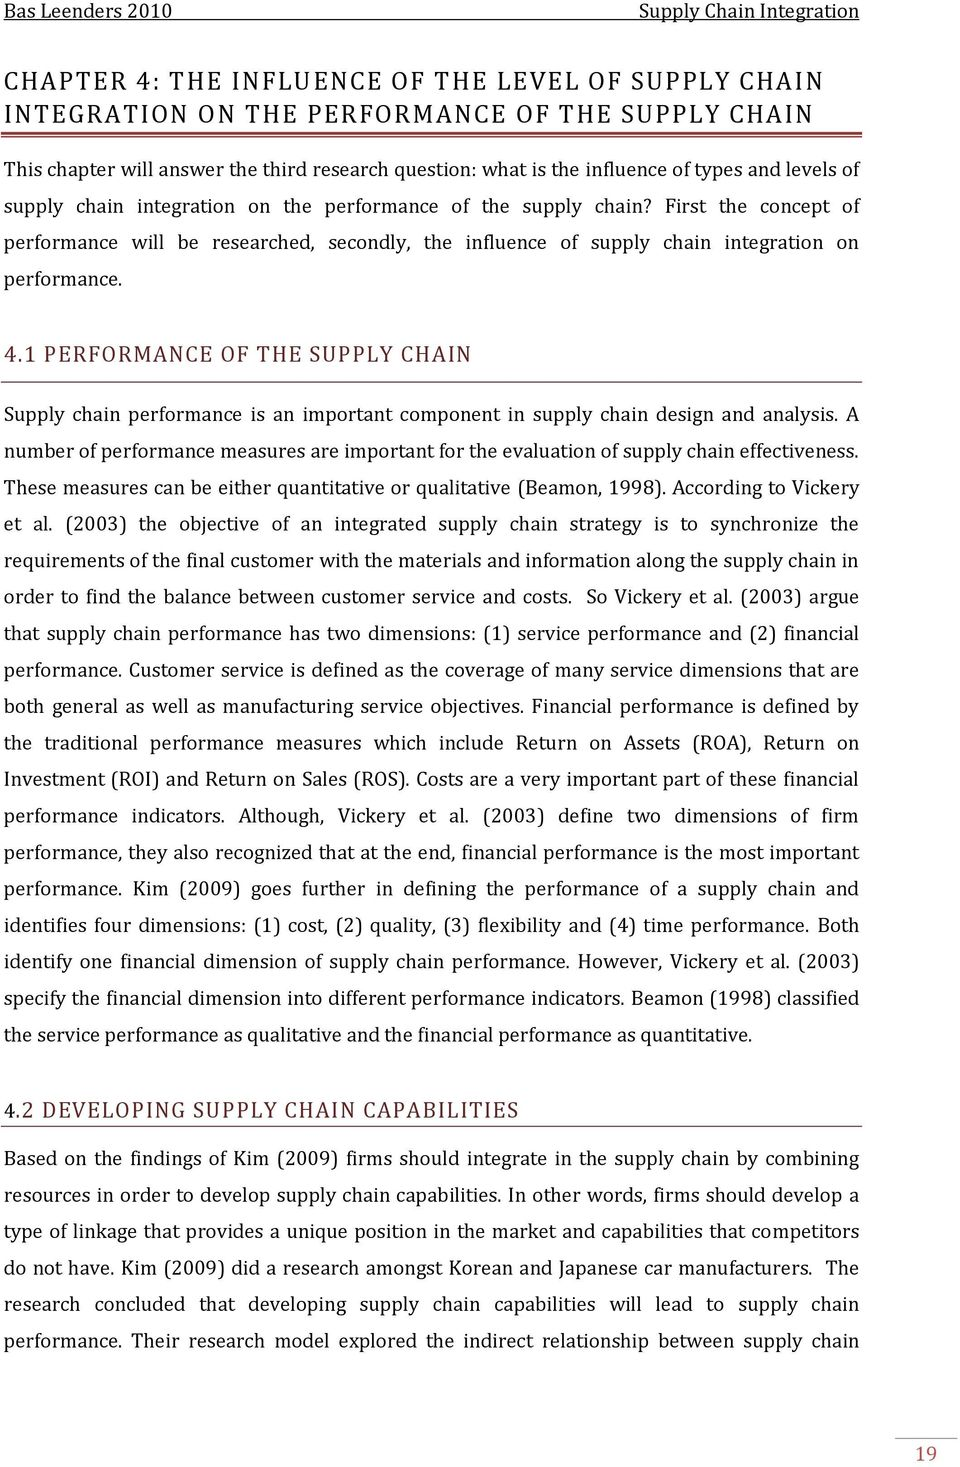 1 PERFORMANCE OF THE SUPPLY CHAIN Supply chain performance is an important component in supply chain design and analysis.